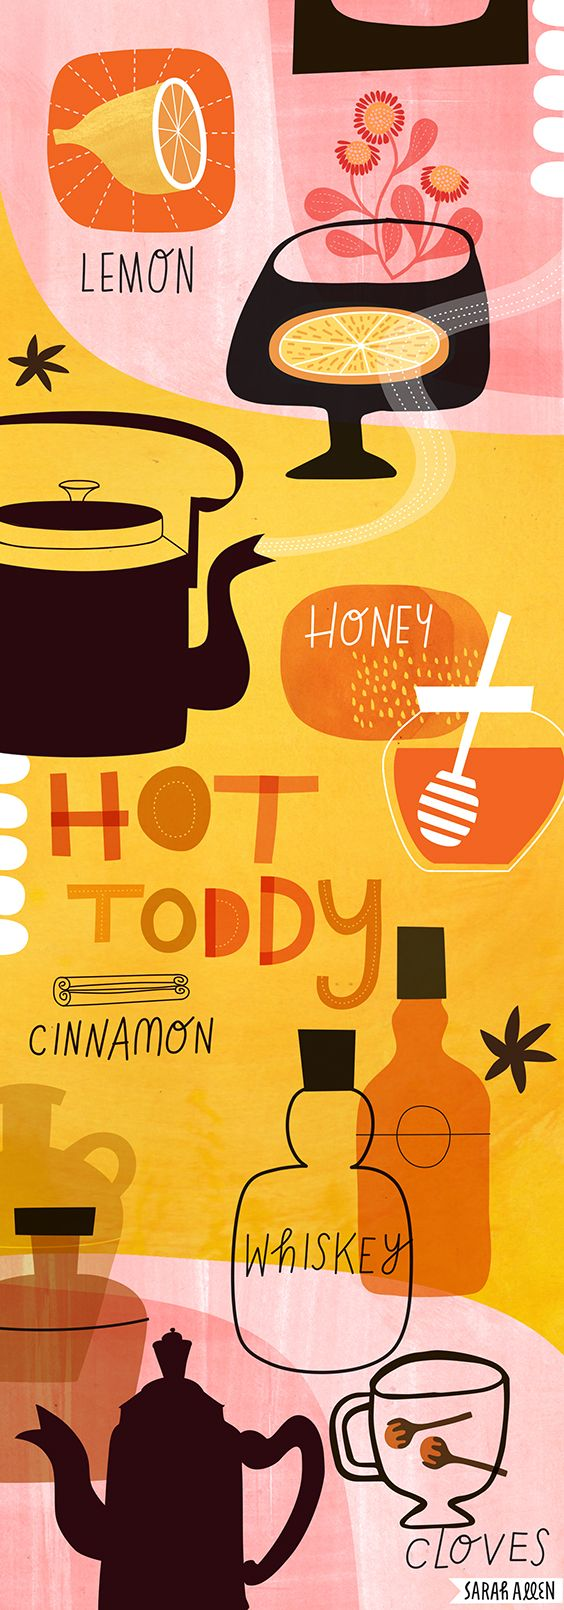 A fall and winter warmer favorite, the traditional Hot Toddy. Illustrated recipe by Sarah Allen Illustration